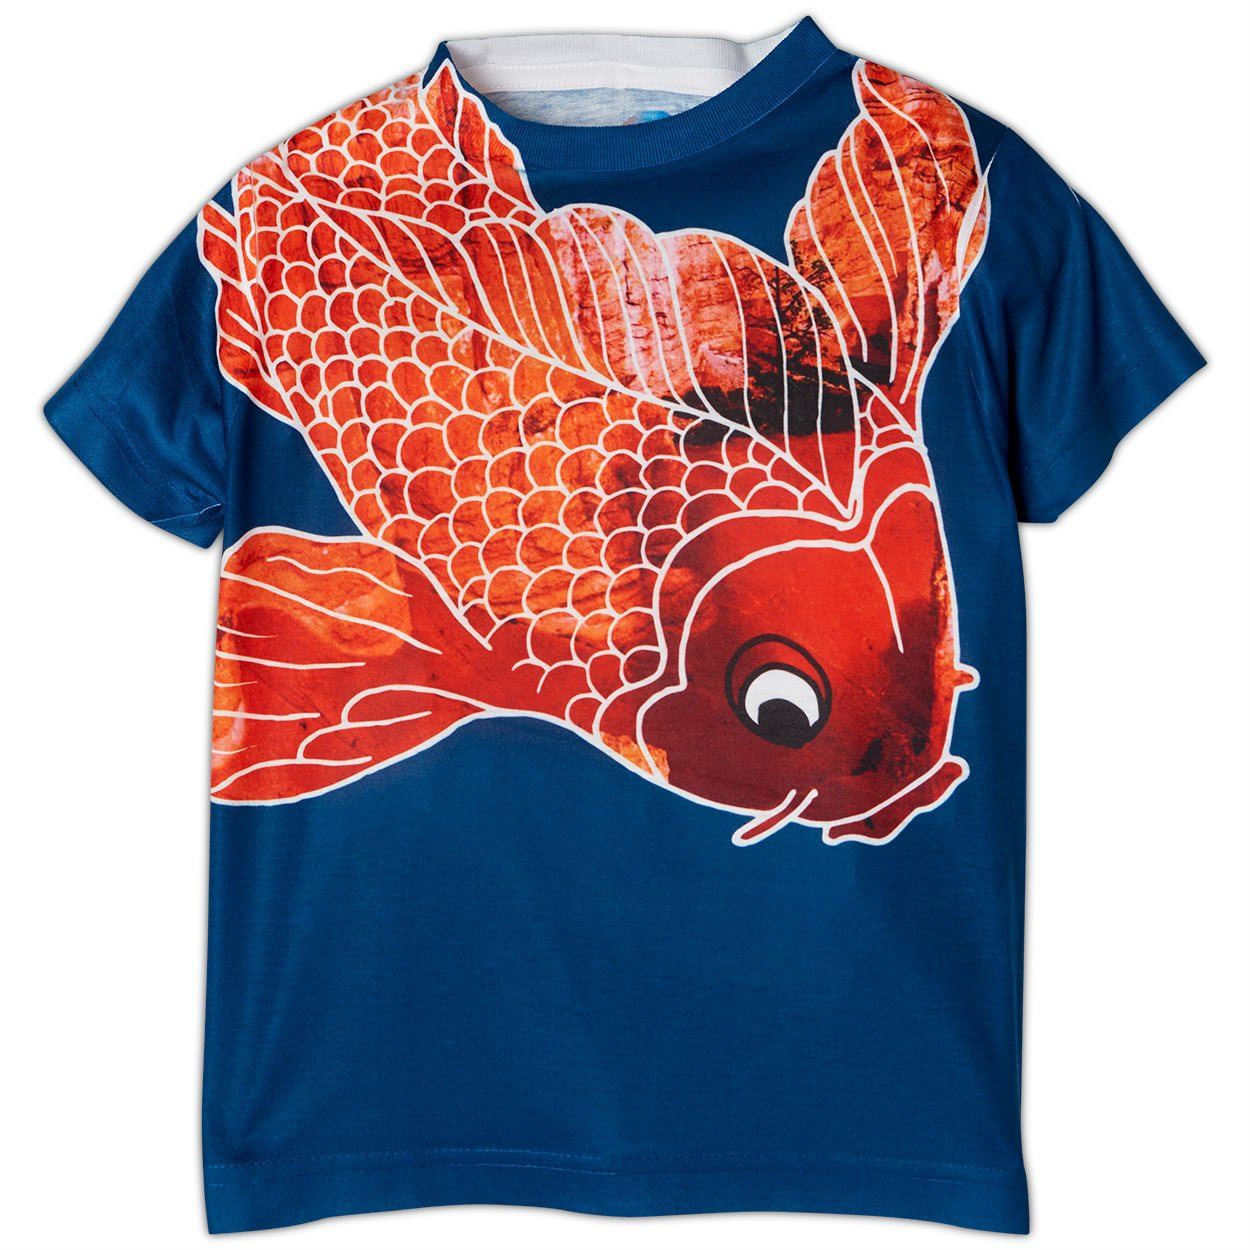 Boys Koi Fish Graphic T-shirt